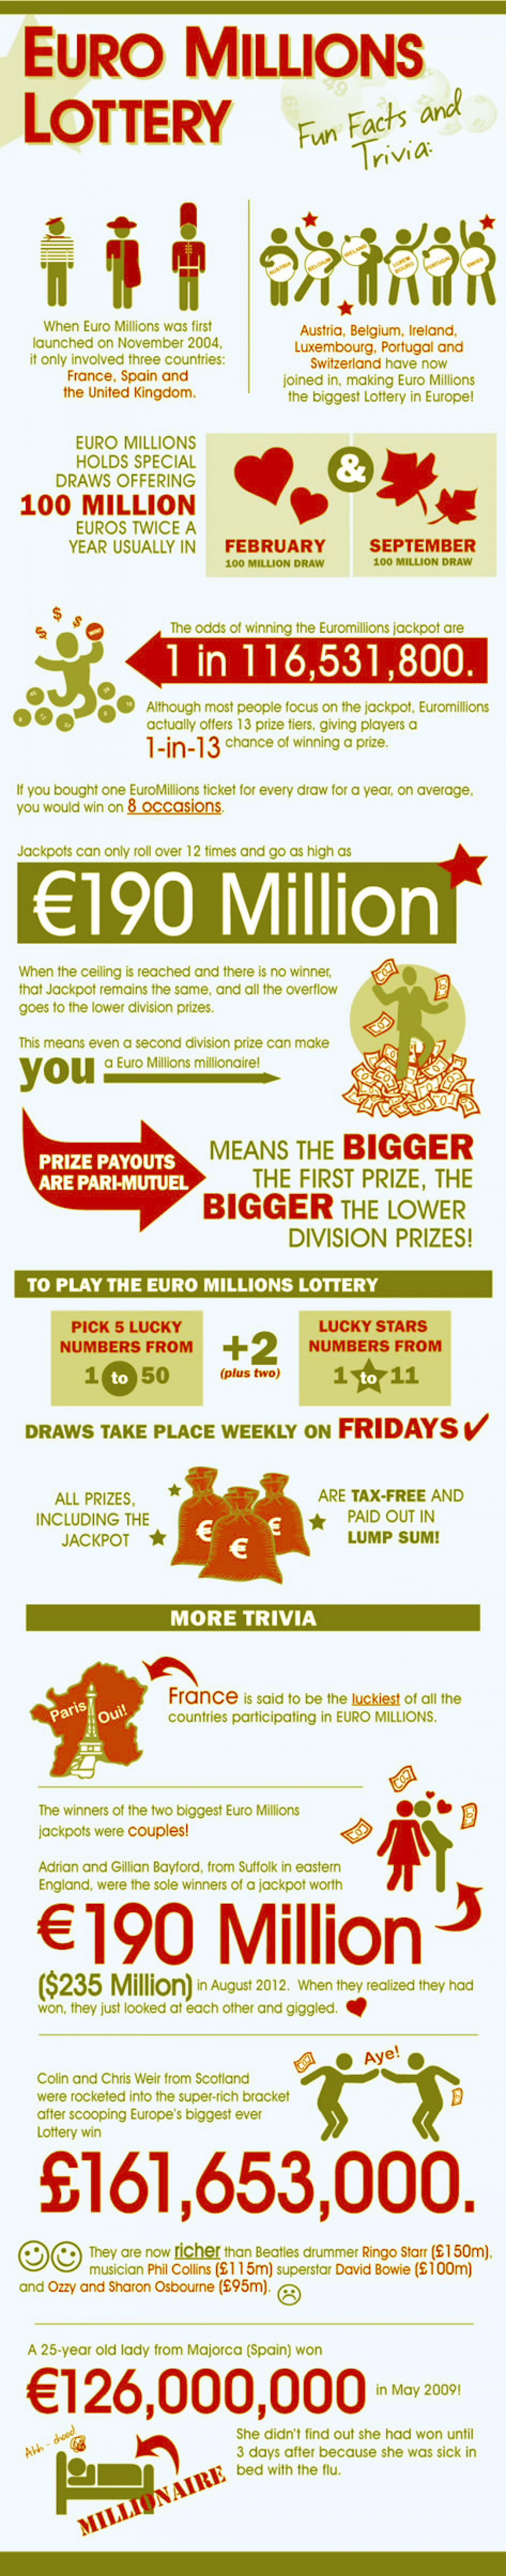 Euromillions Lottery Infographic